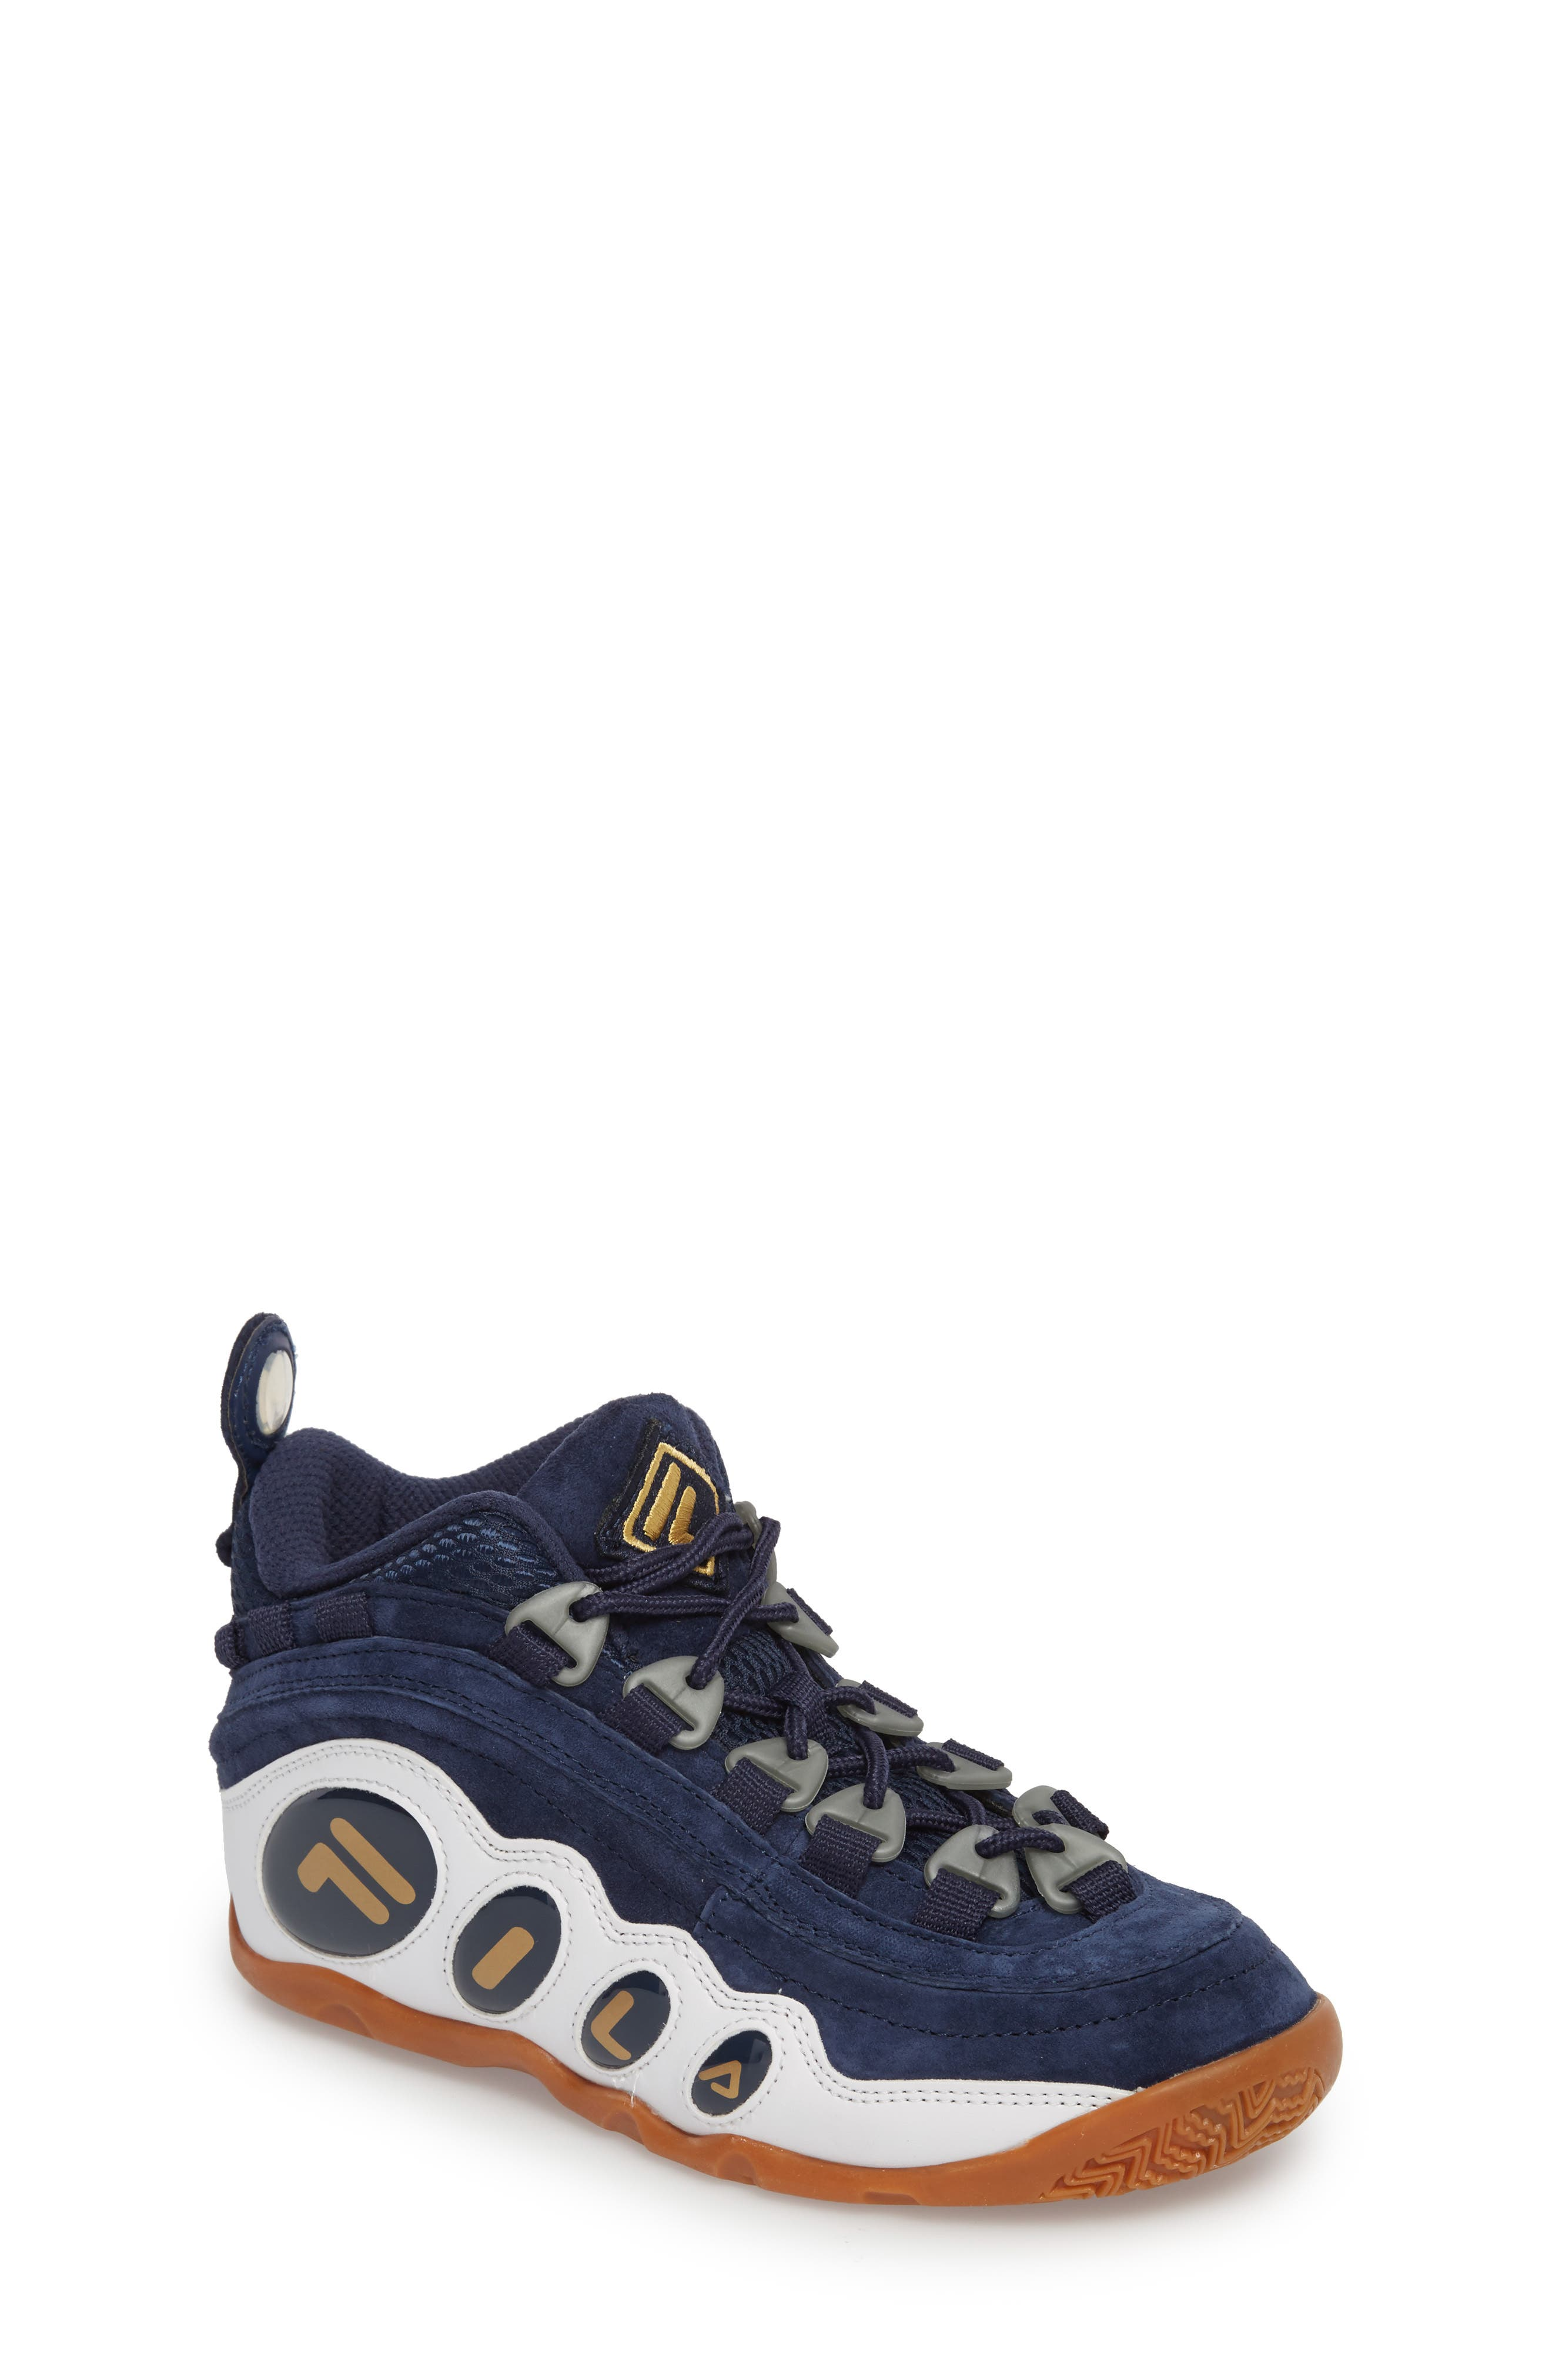 Bubbles Mid Top Sneaker Boot,                             Main thumbnail 1, color,                             NAVY/ GOLD/ WHITE